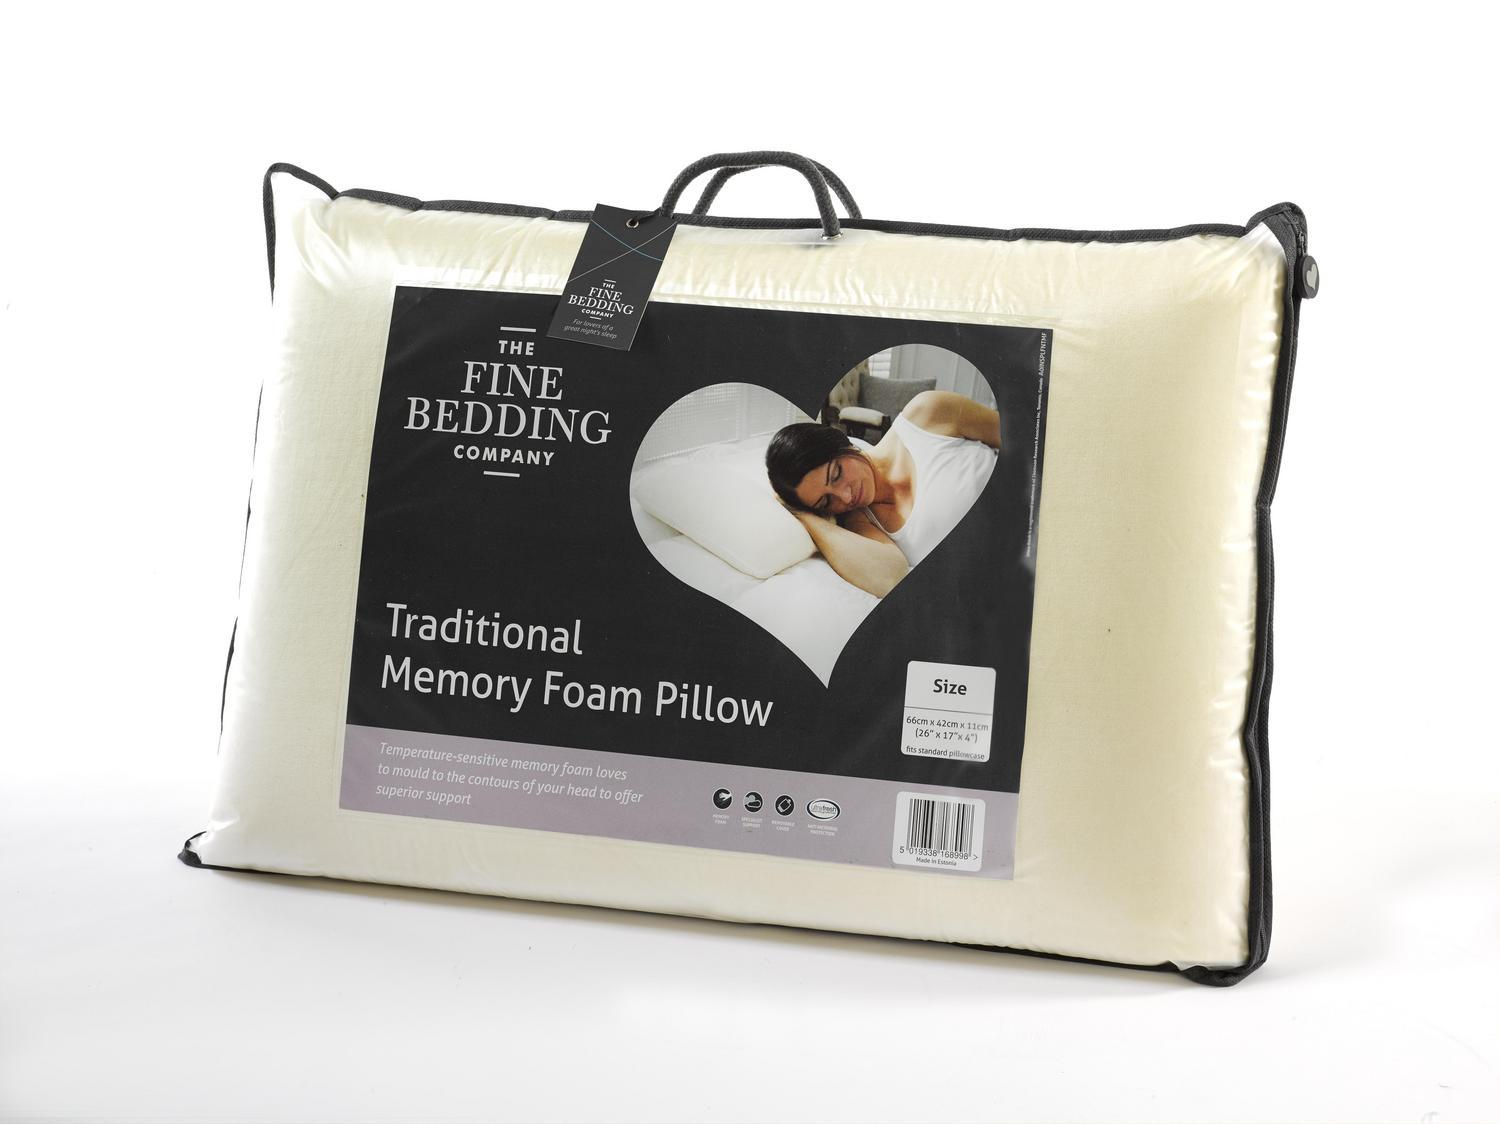 The Fine Bedding Company Traditional Memory Foam Pillow